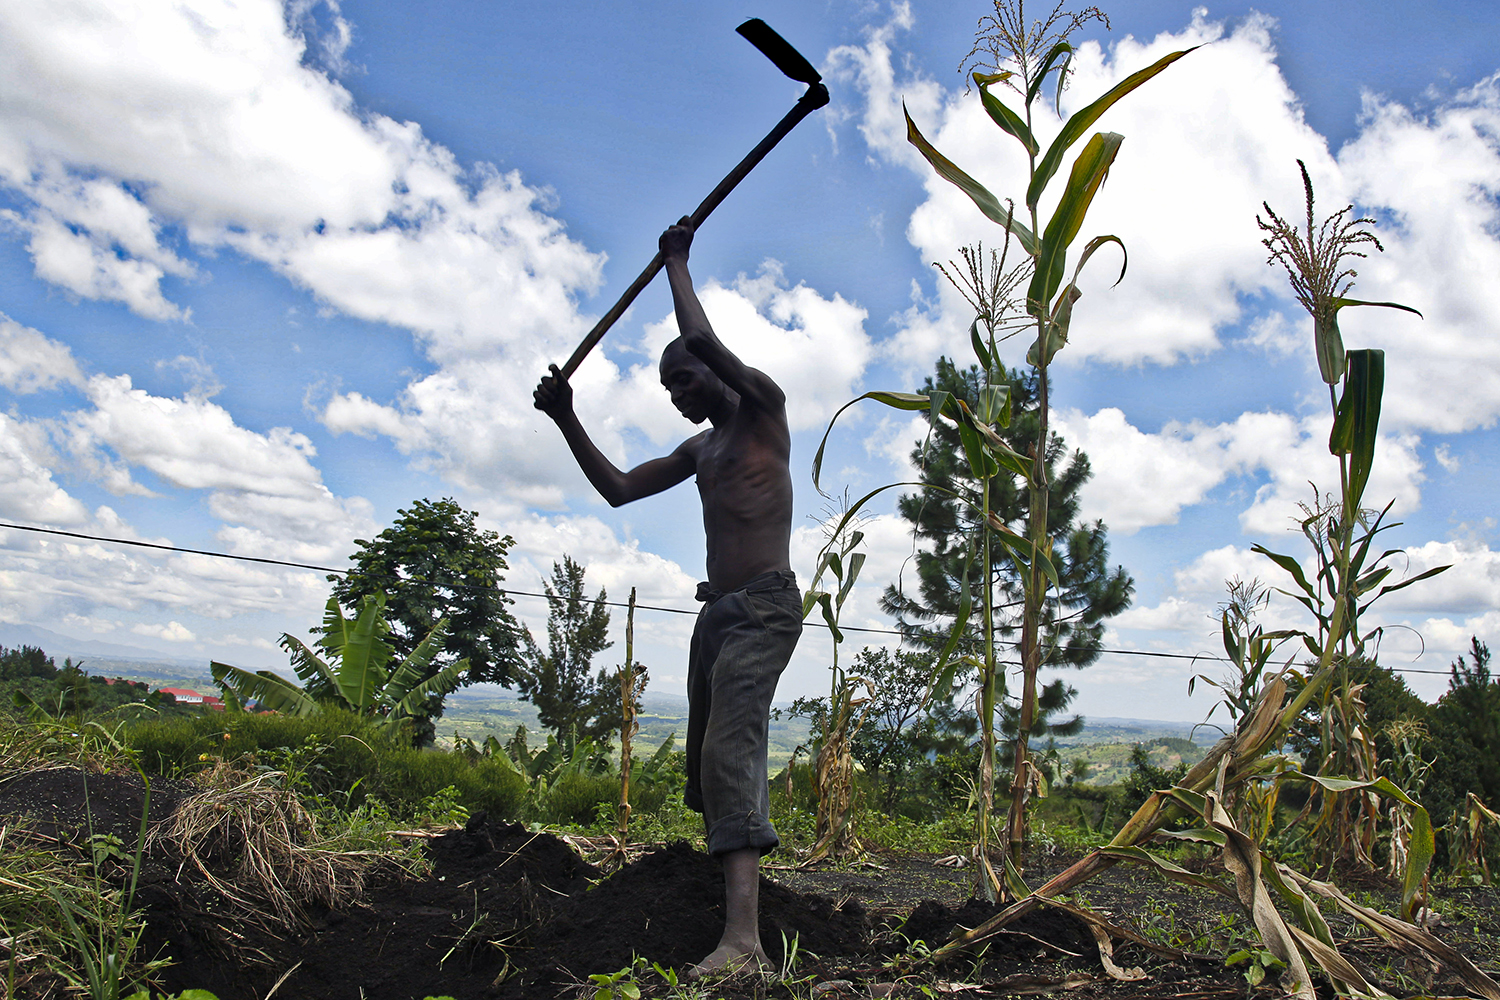 A farmer prepares the earth for cultivation near the Lake Nkuruba Nature Reserve in southwest Uganda on Feb. 7, 2020.